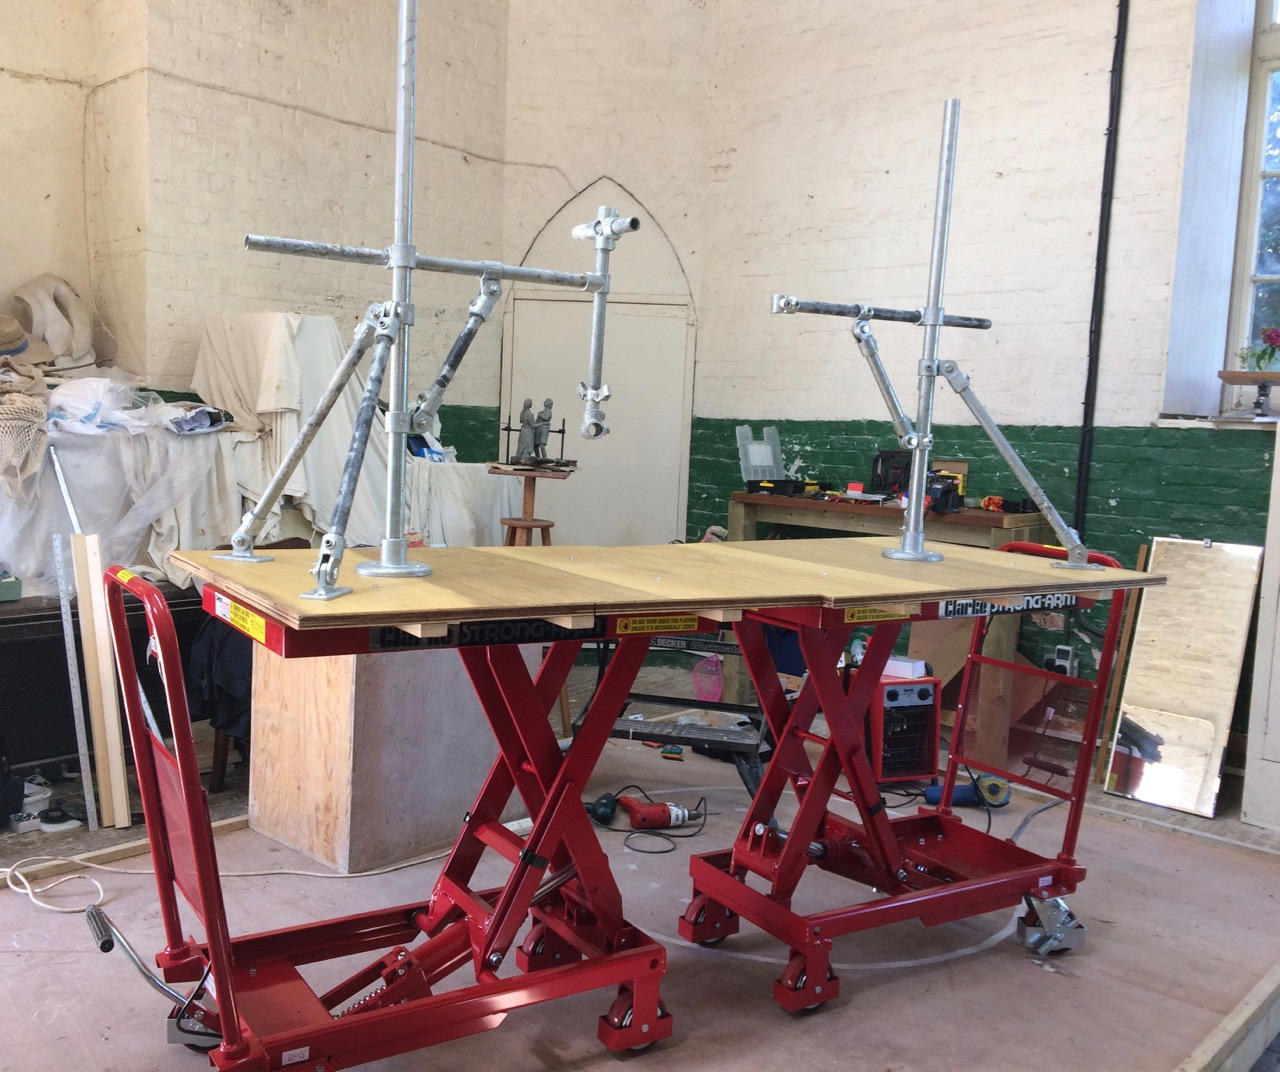 Building the Cracker Packer armatures – I